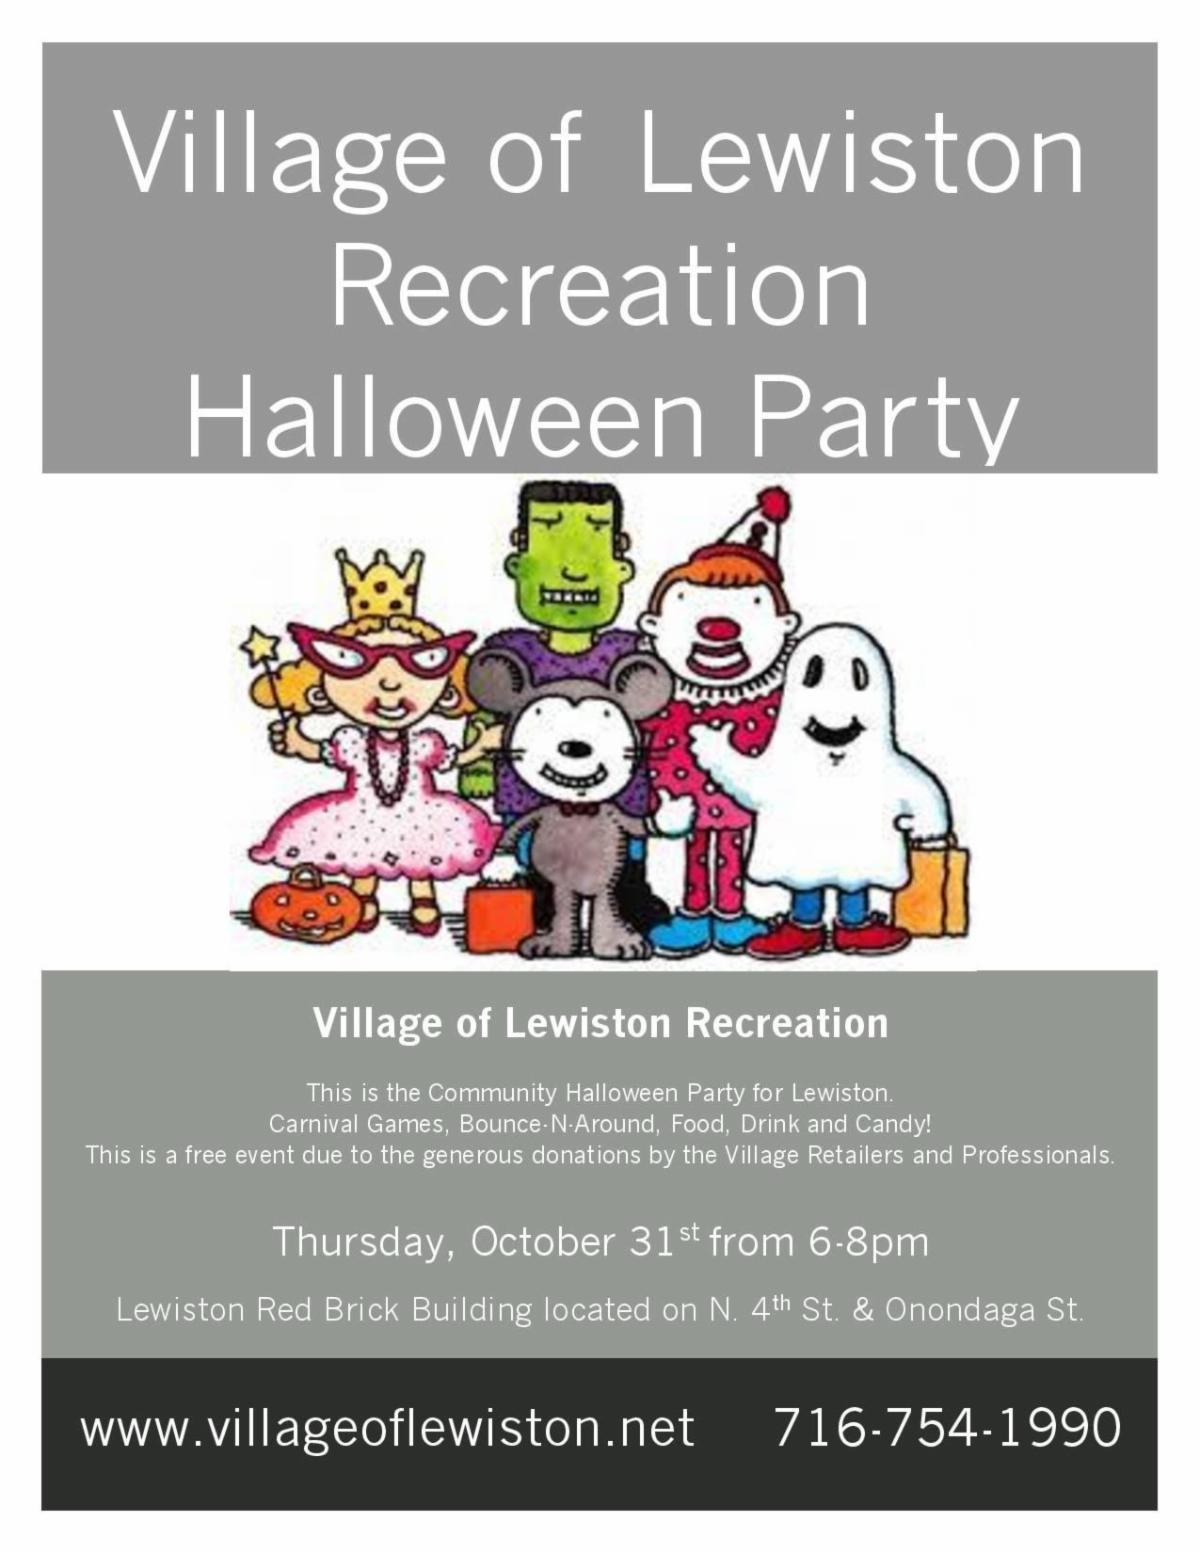 Halloween 2020 Lewiston Ny Lewiston Recreation Halloween Party – October 31, 2019  Lewiston